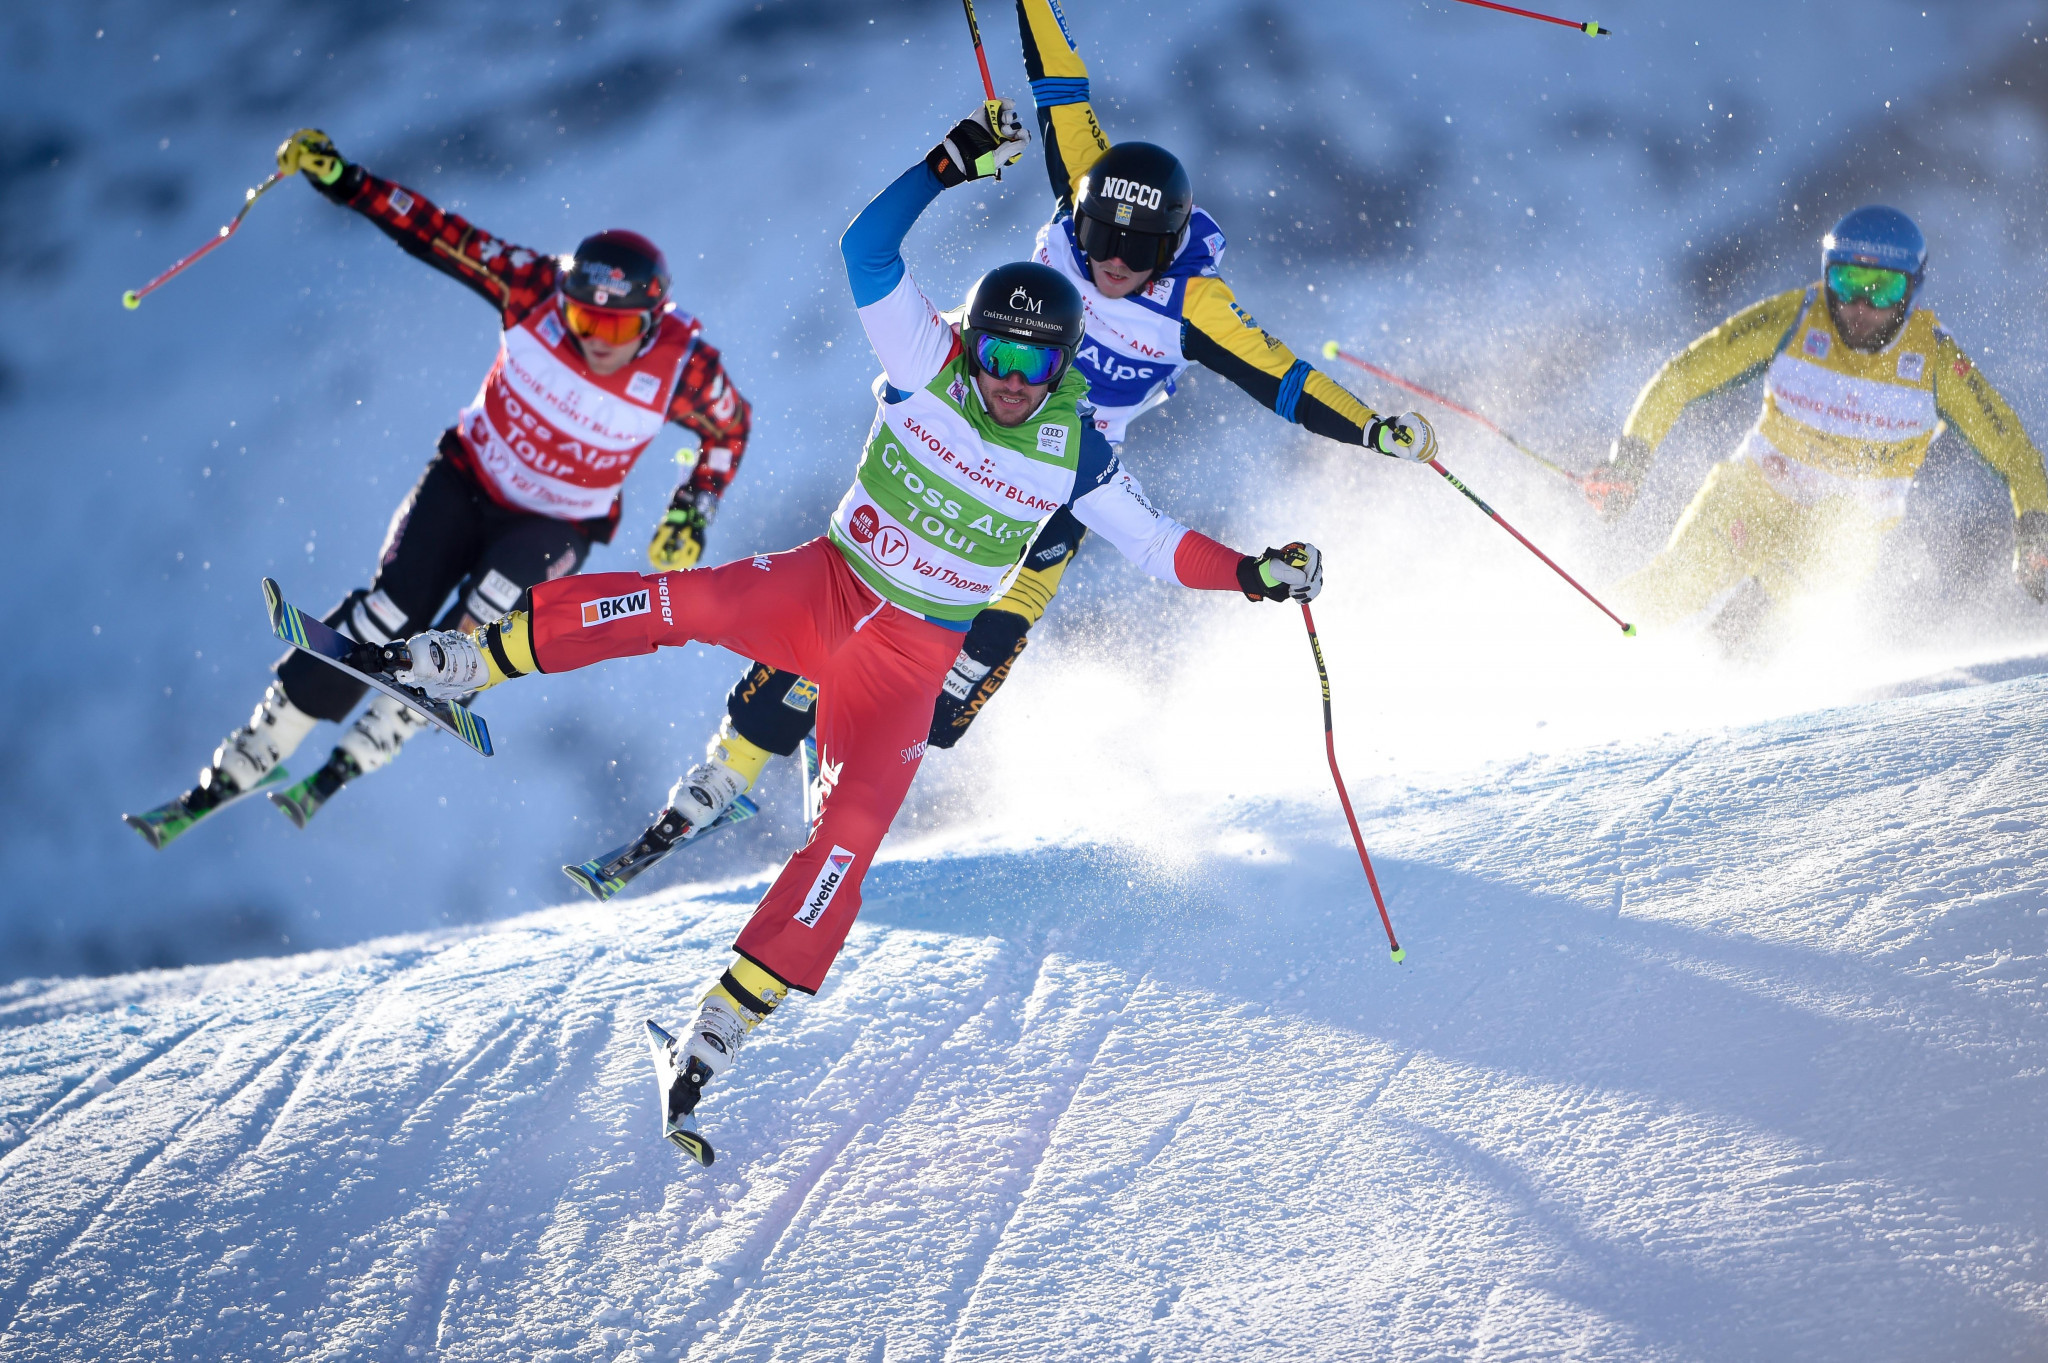 Midol brothers make podium again at FIS Ski Cross World Cup in Innichen